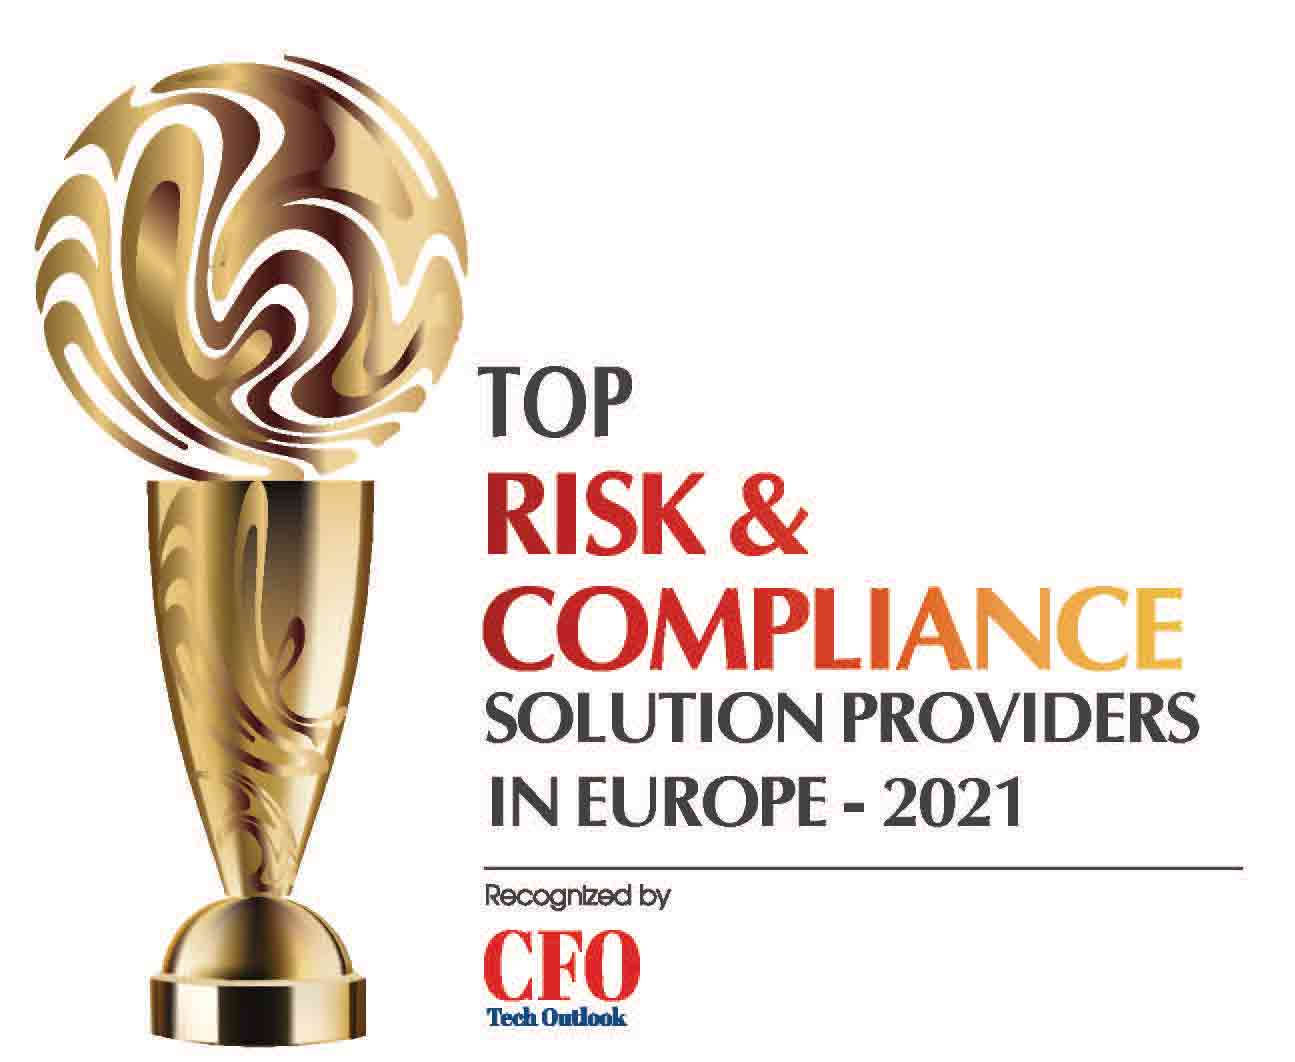 Top 10 Risk and Compliance Solution Companies in Europe - 2021